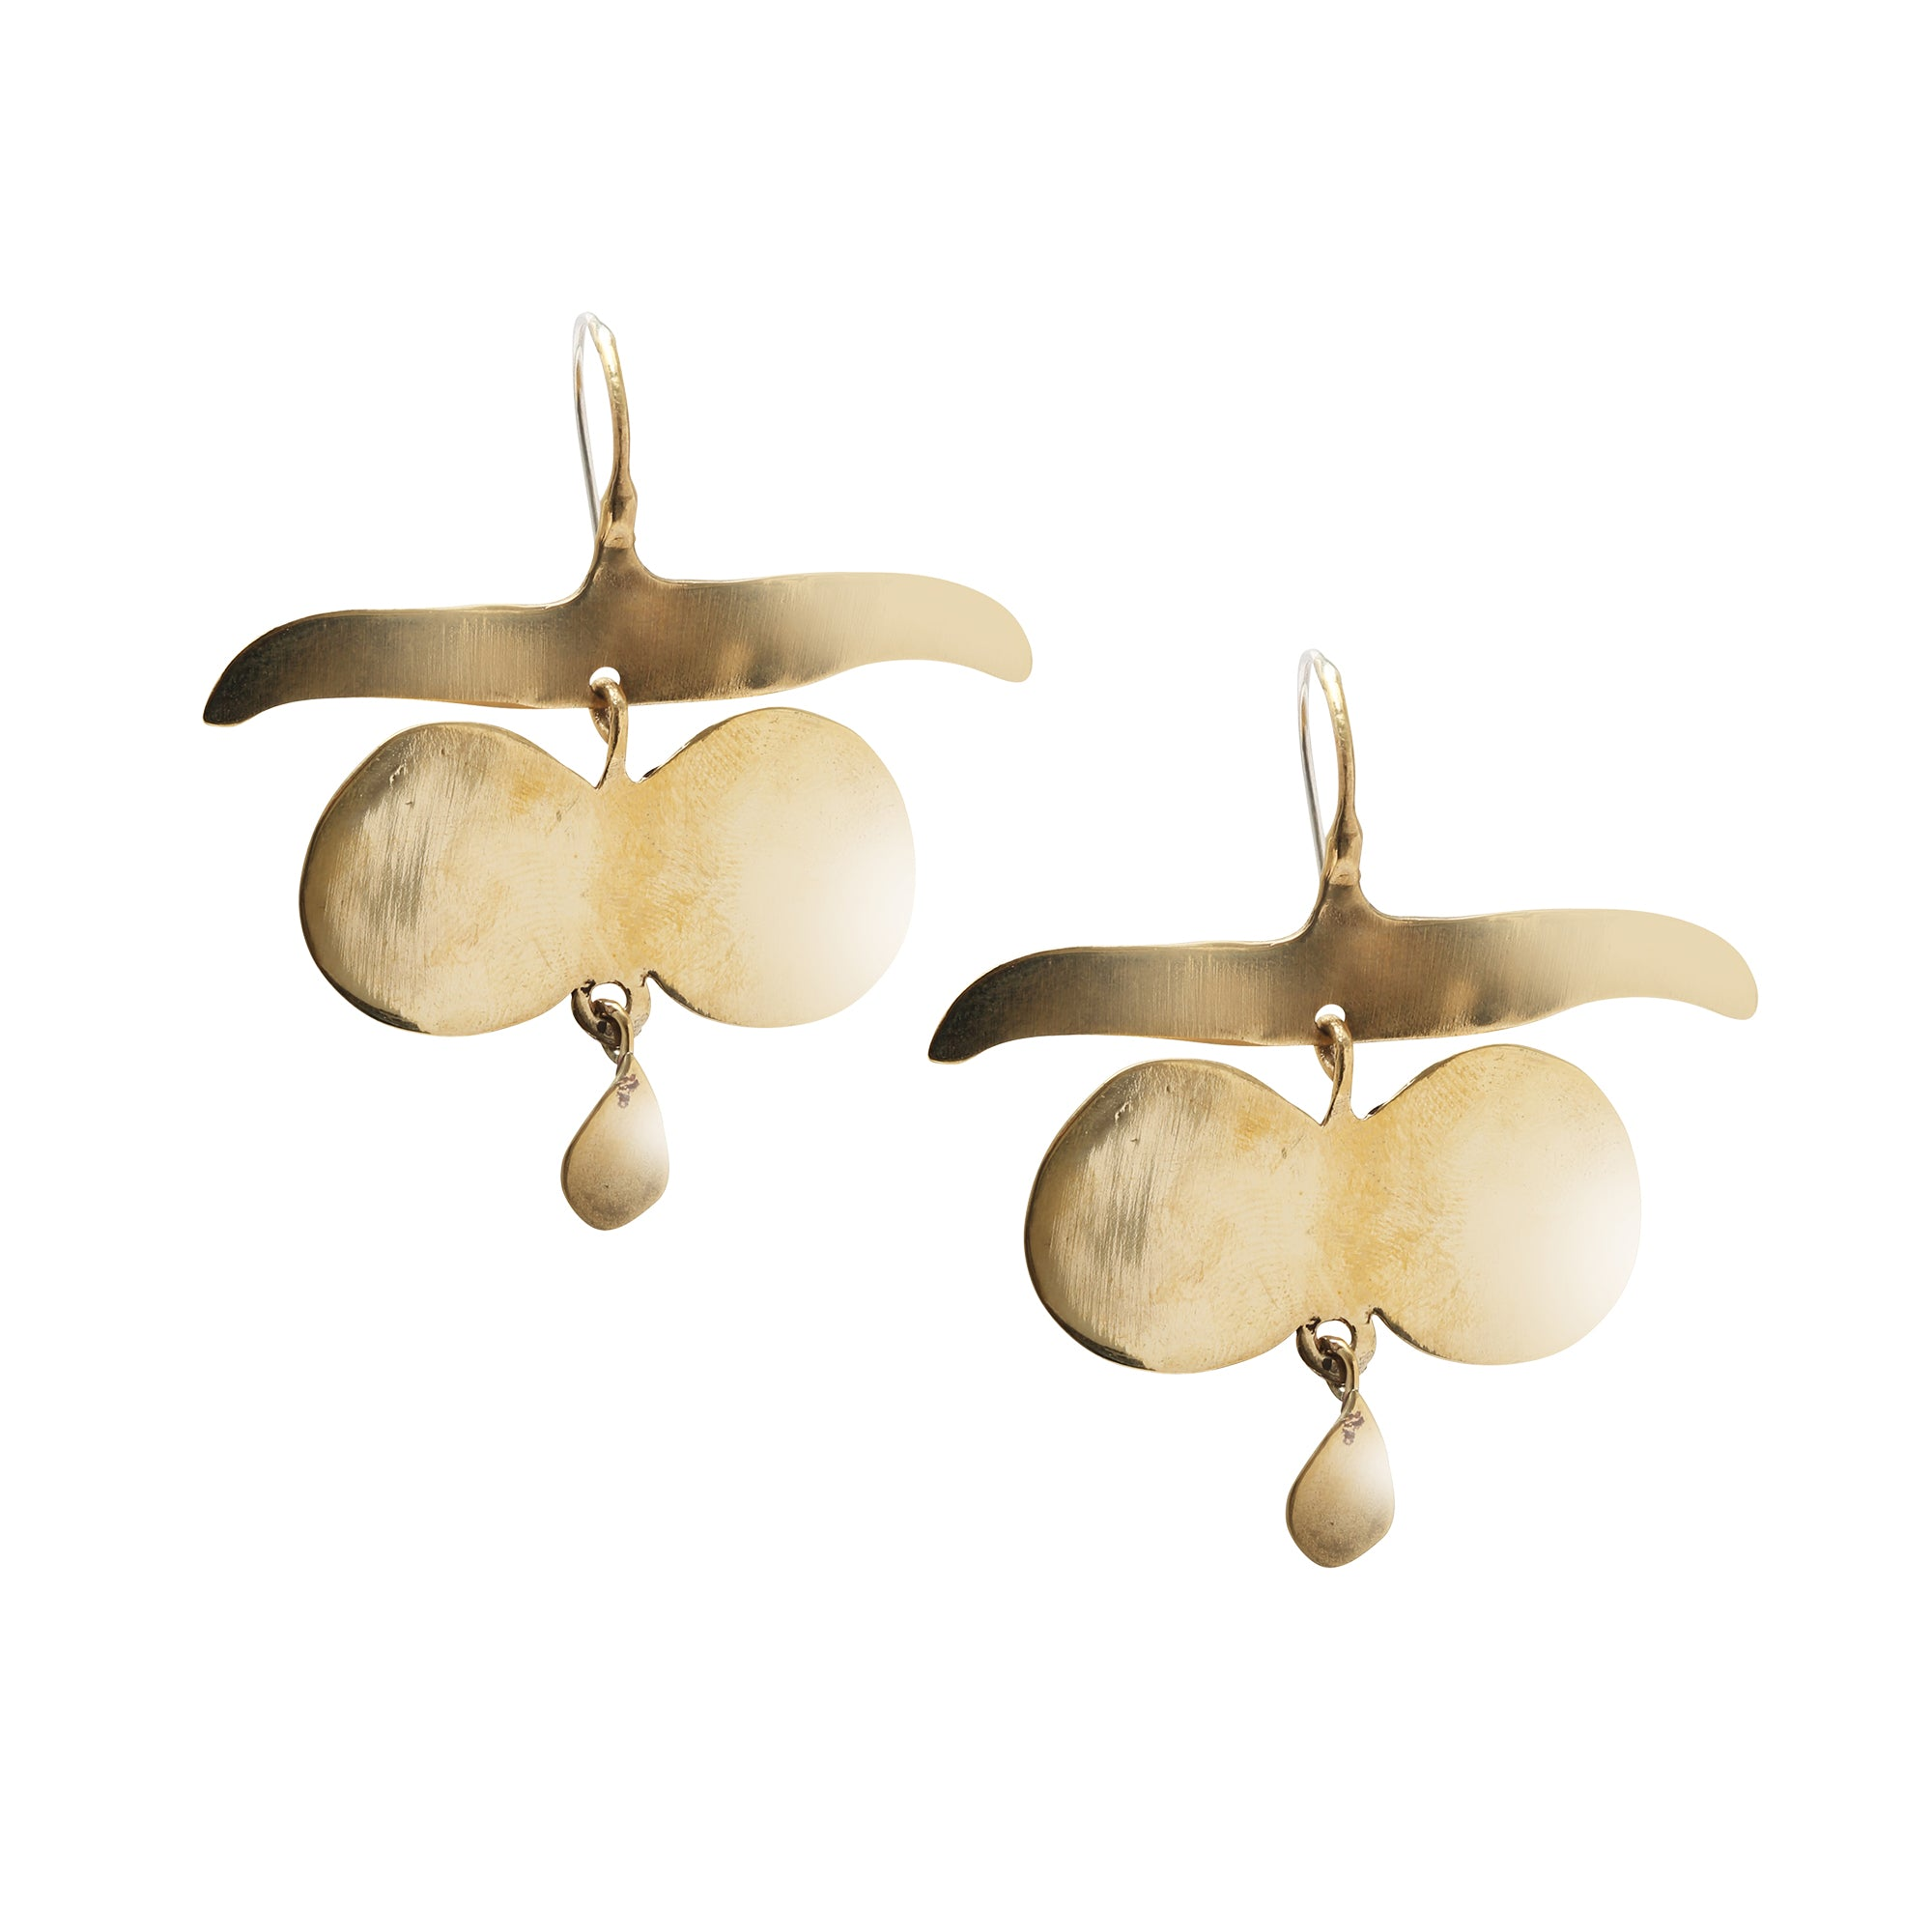 Brass Platoro Earrings by Ariana Boussard-Reifel for Broken English Jewelry